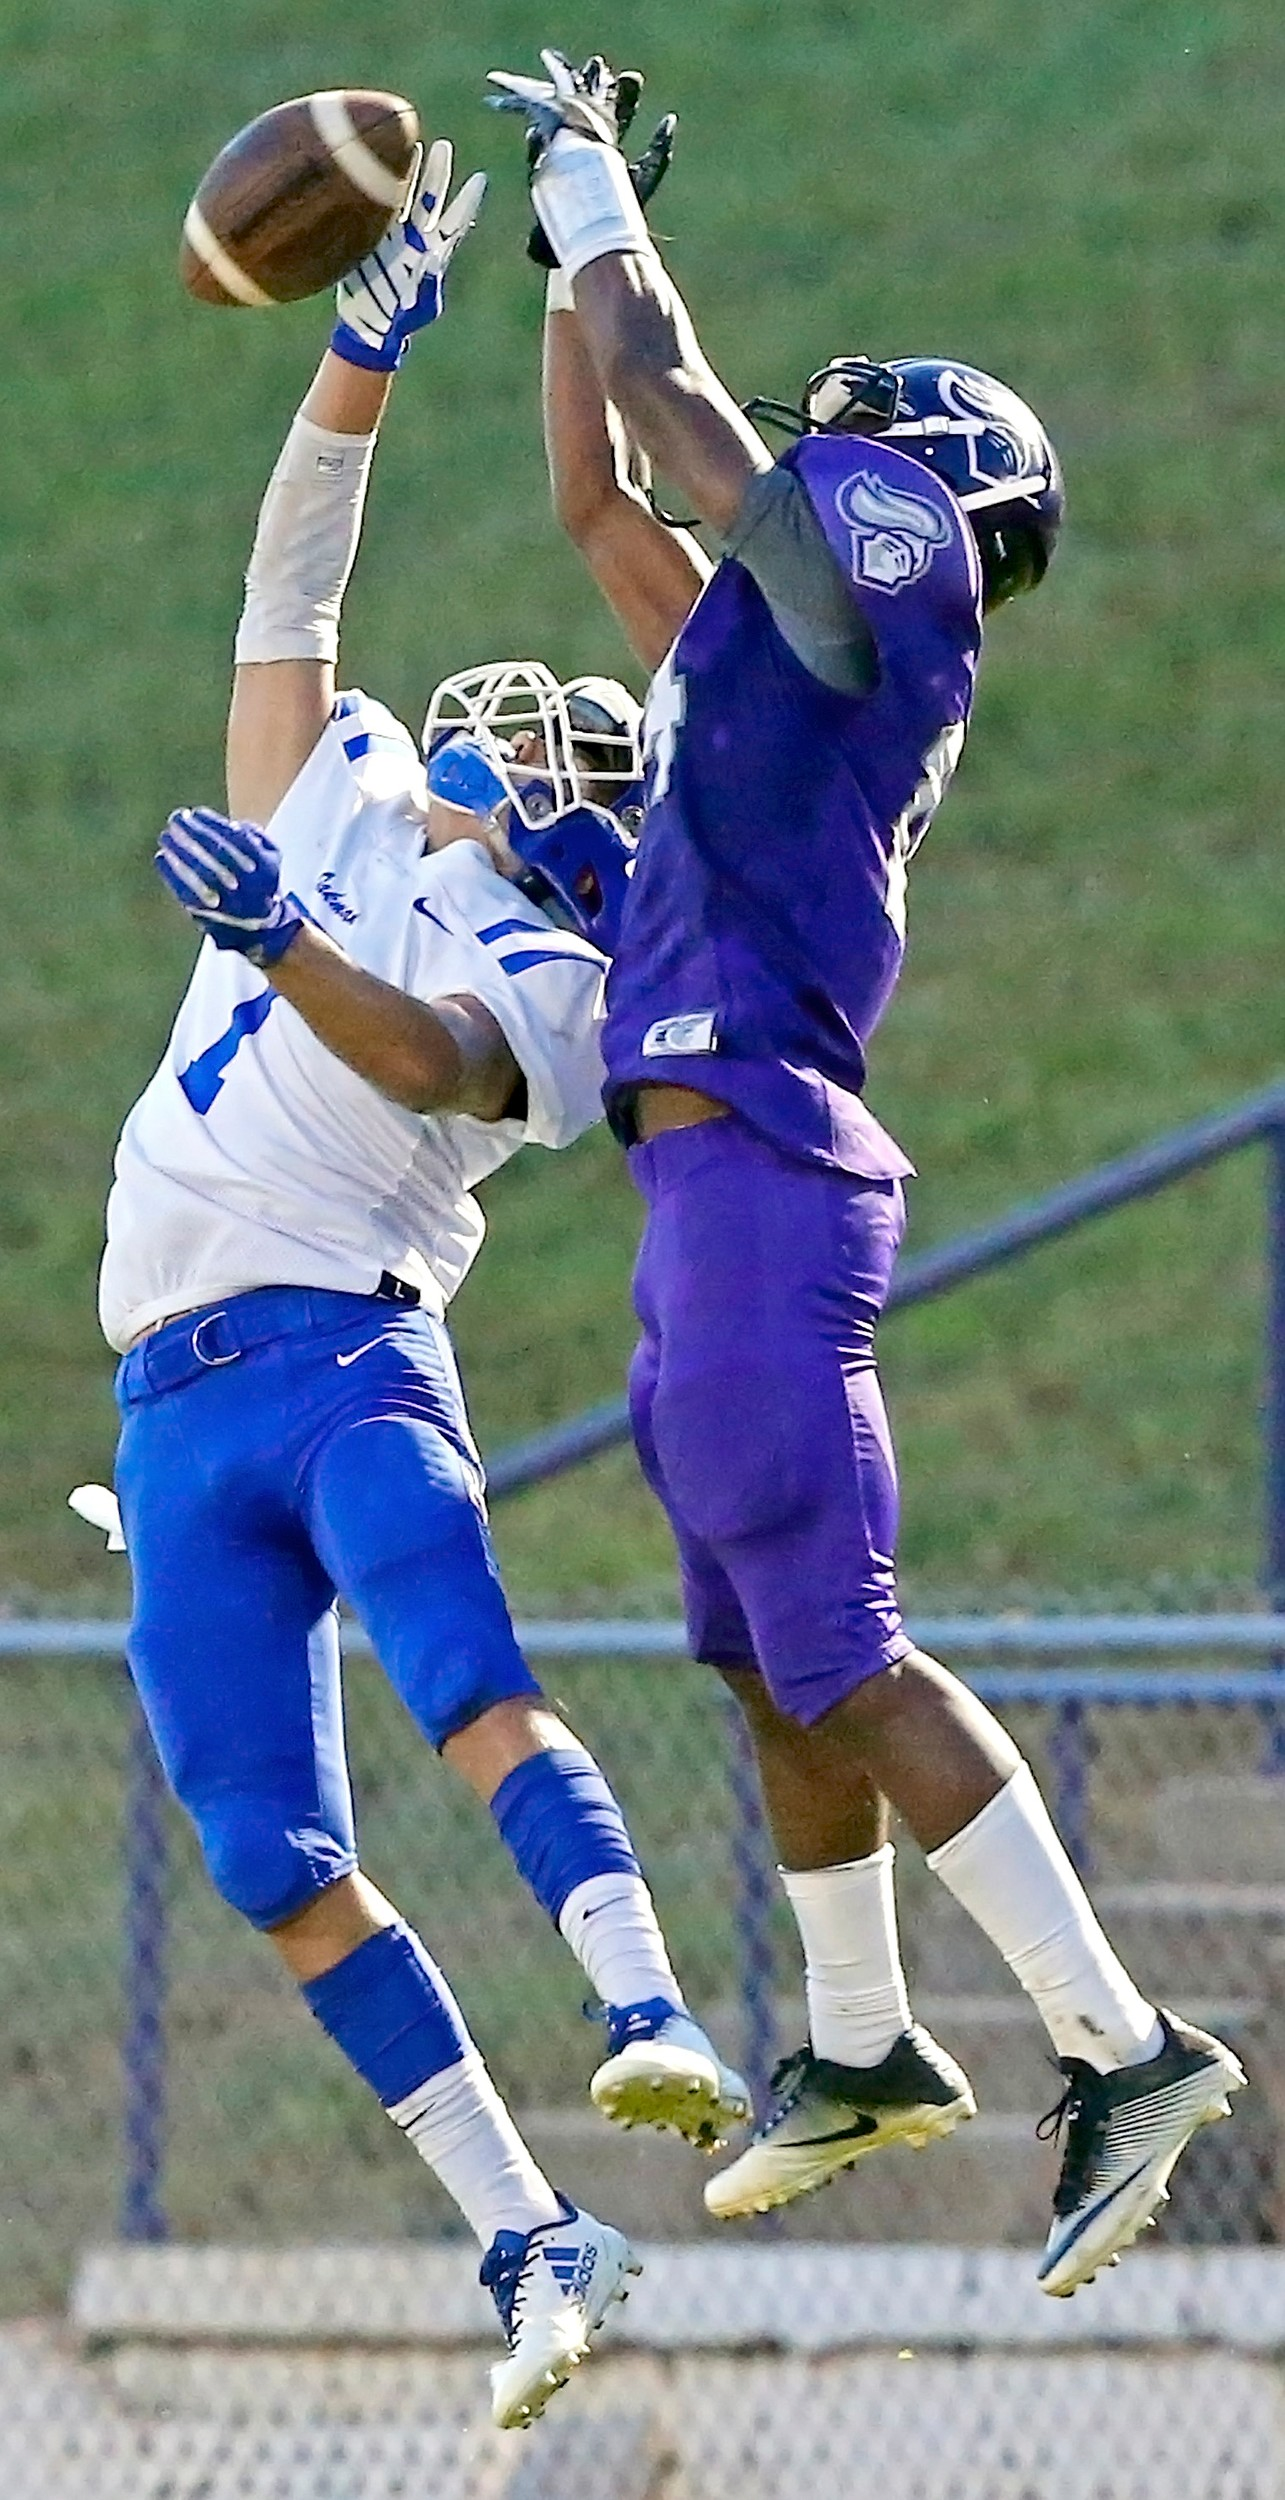 Oakman's Ryan Shepard (1) breaks up a pass intended for a Holt receiver during their game Friday night. Oakman won 27-0.